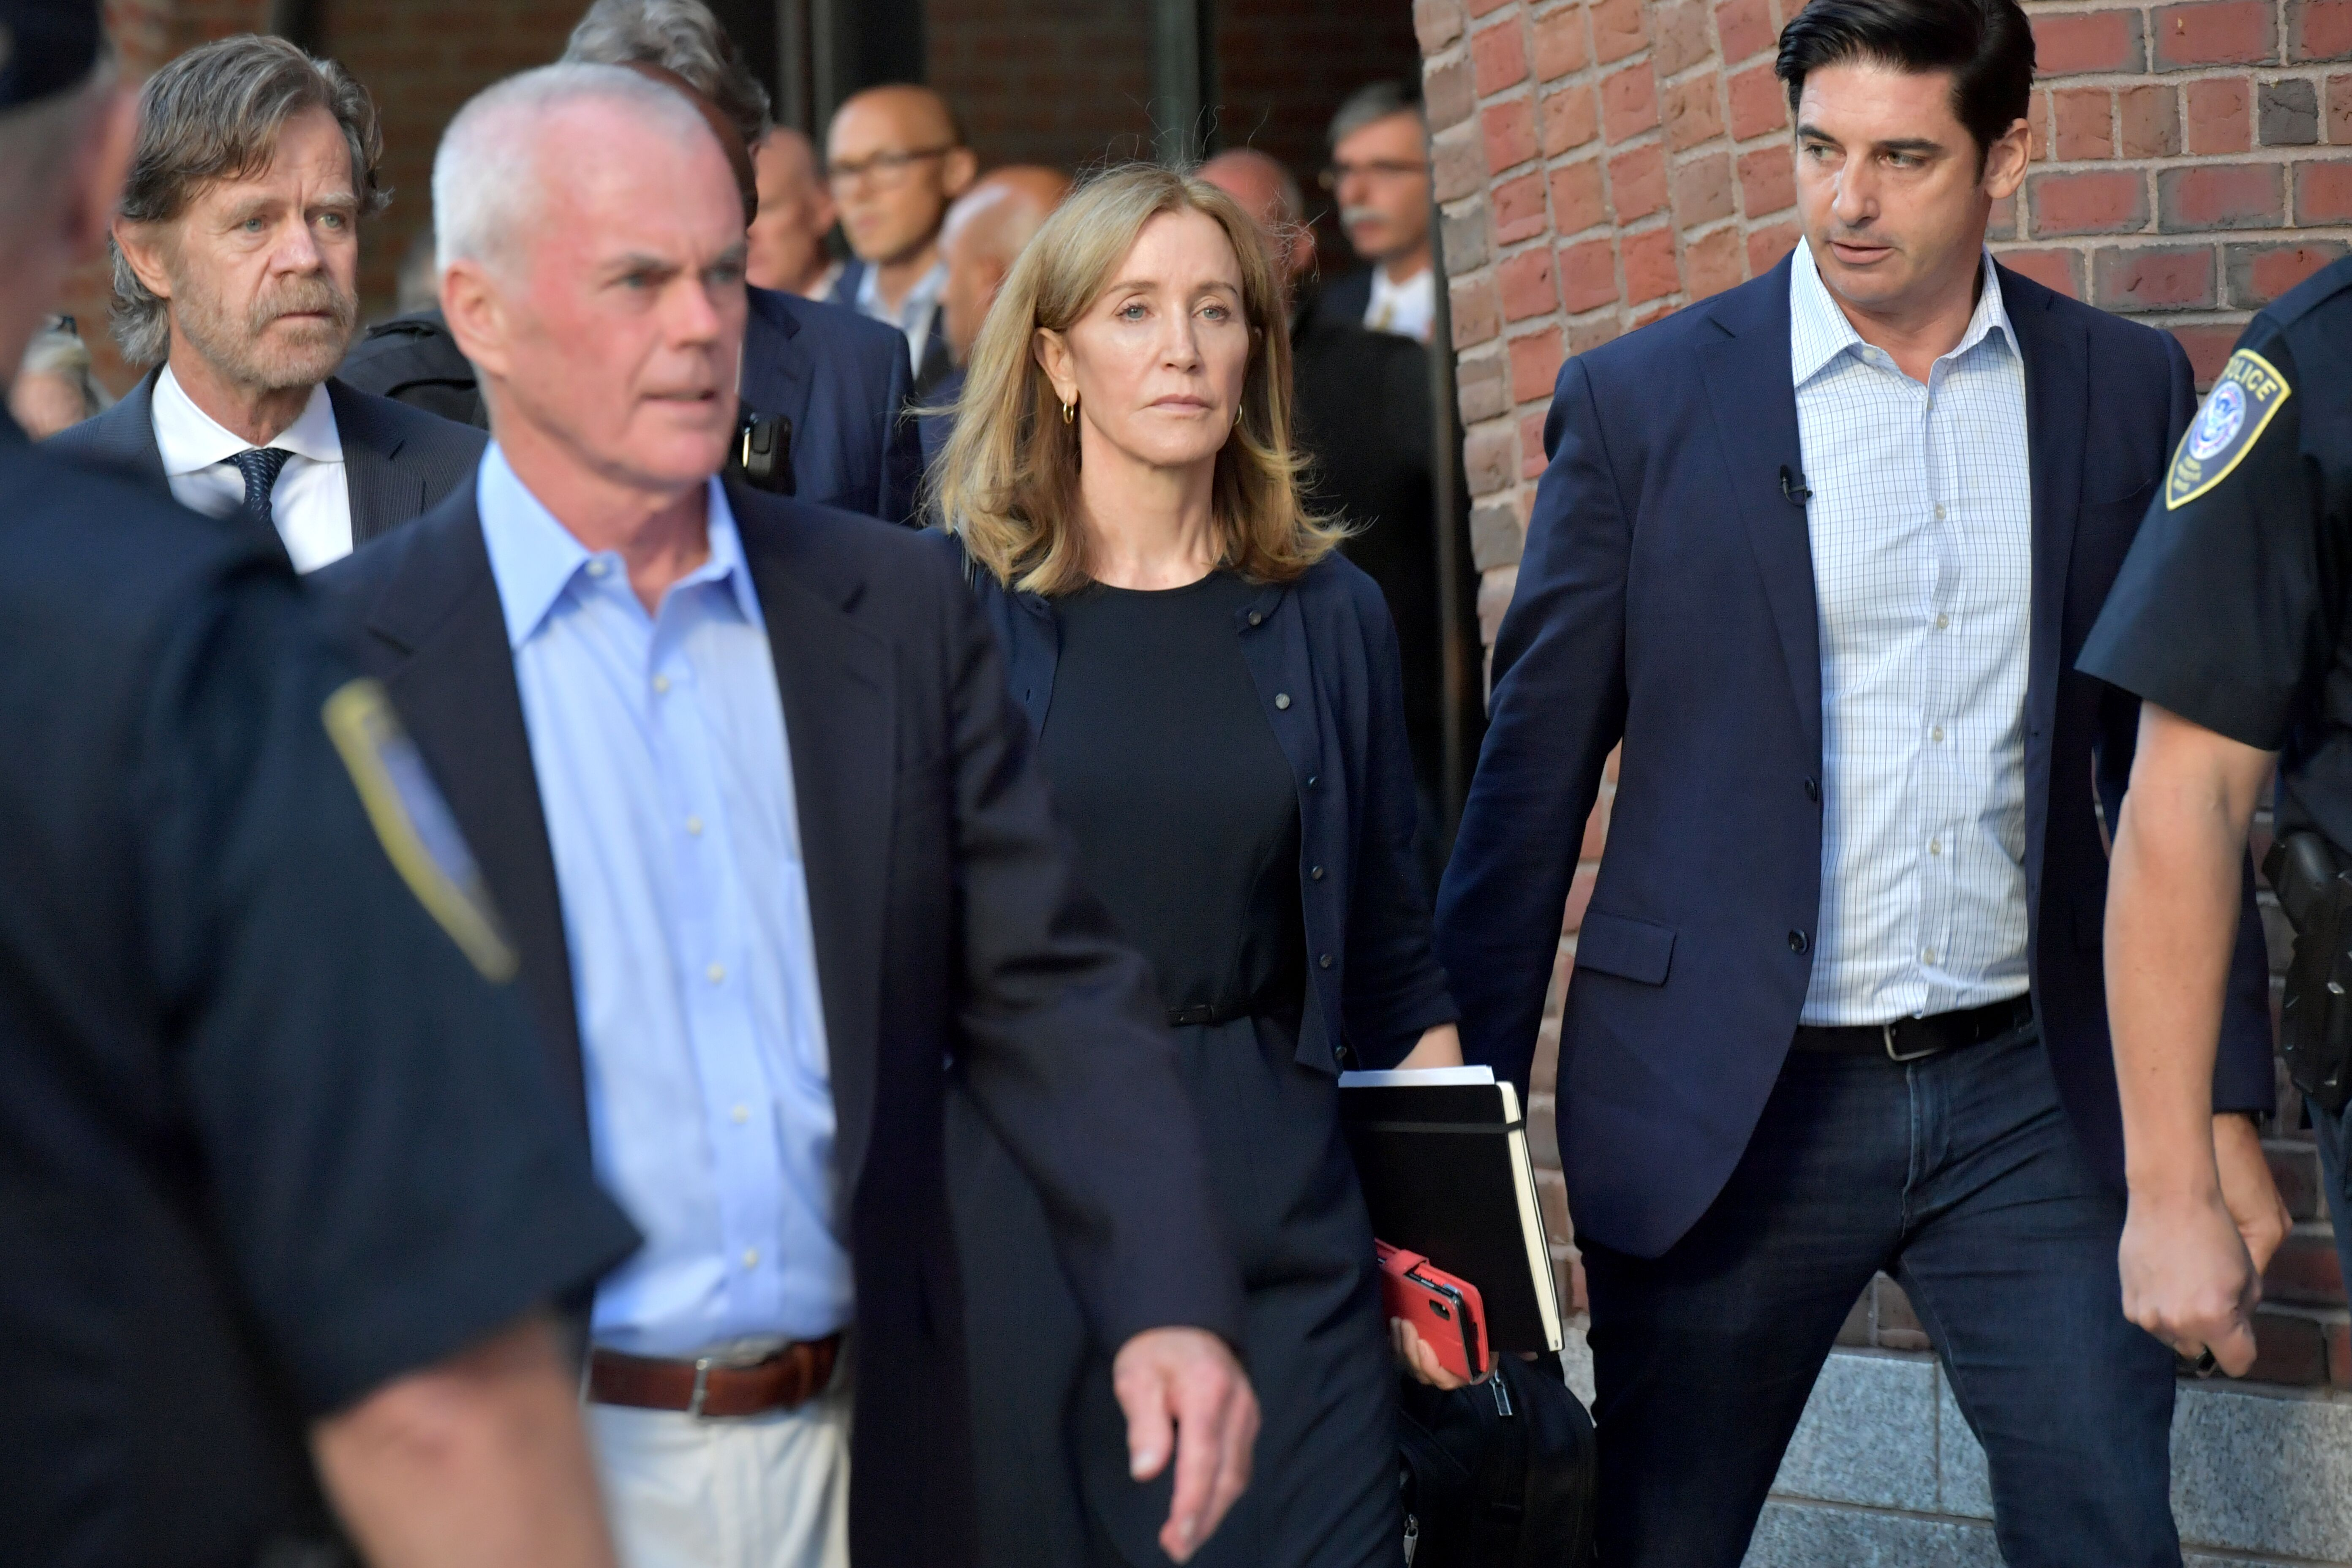 Felicity Huffman & husband William Macy exit the court after Huffman's sentencing on Sept. 13, 2019 in Massachusetts   Photo: Getty Images